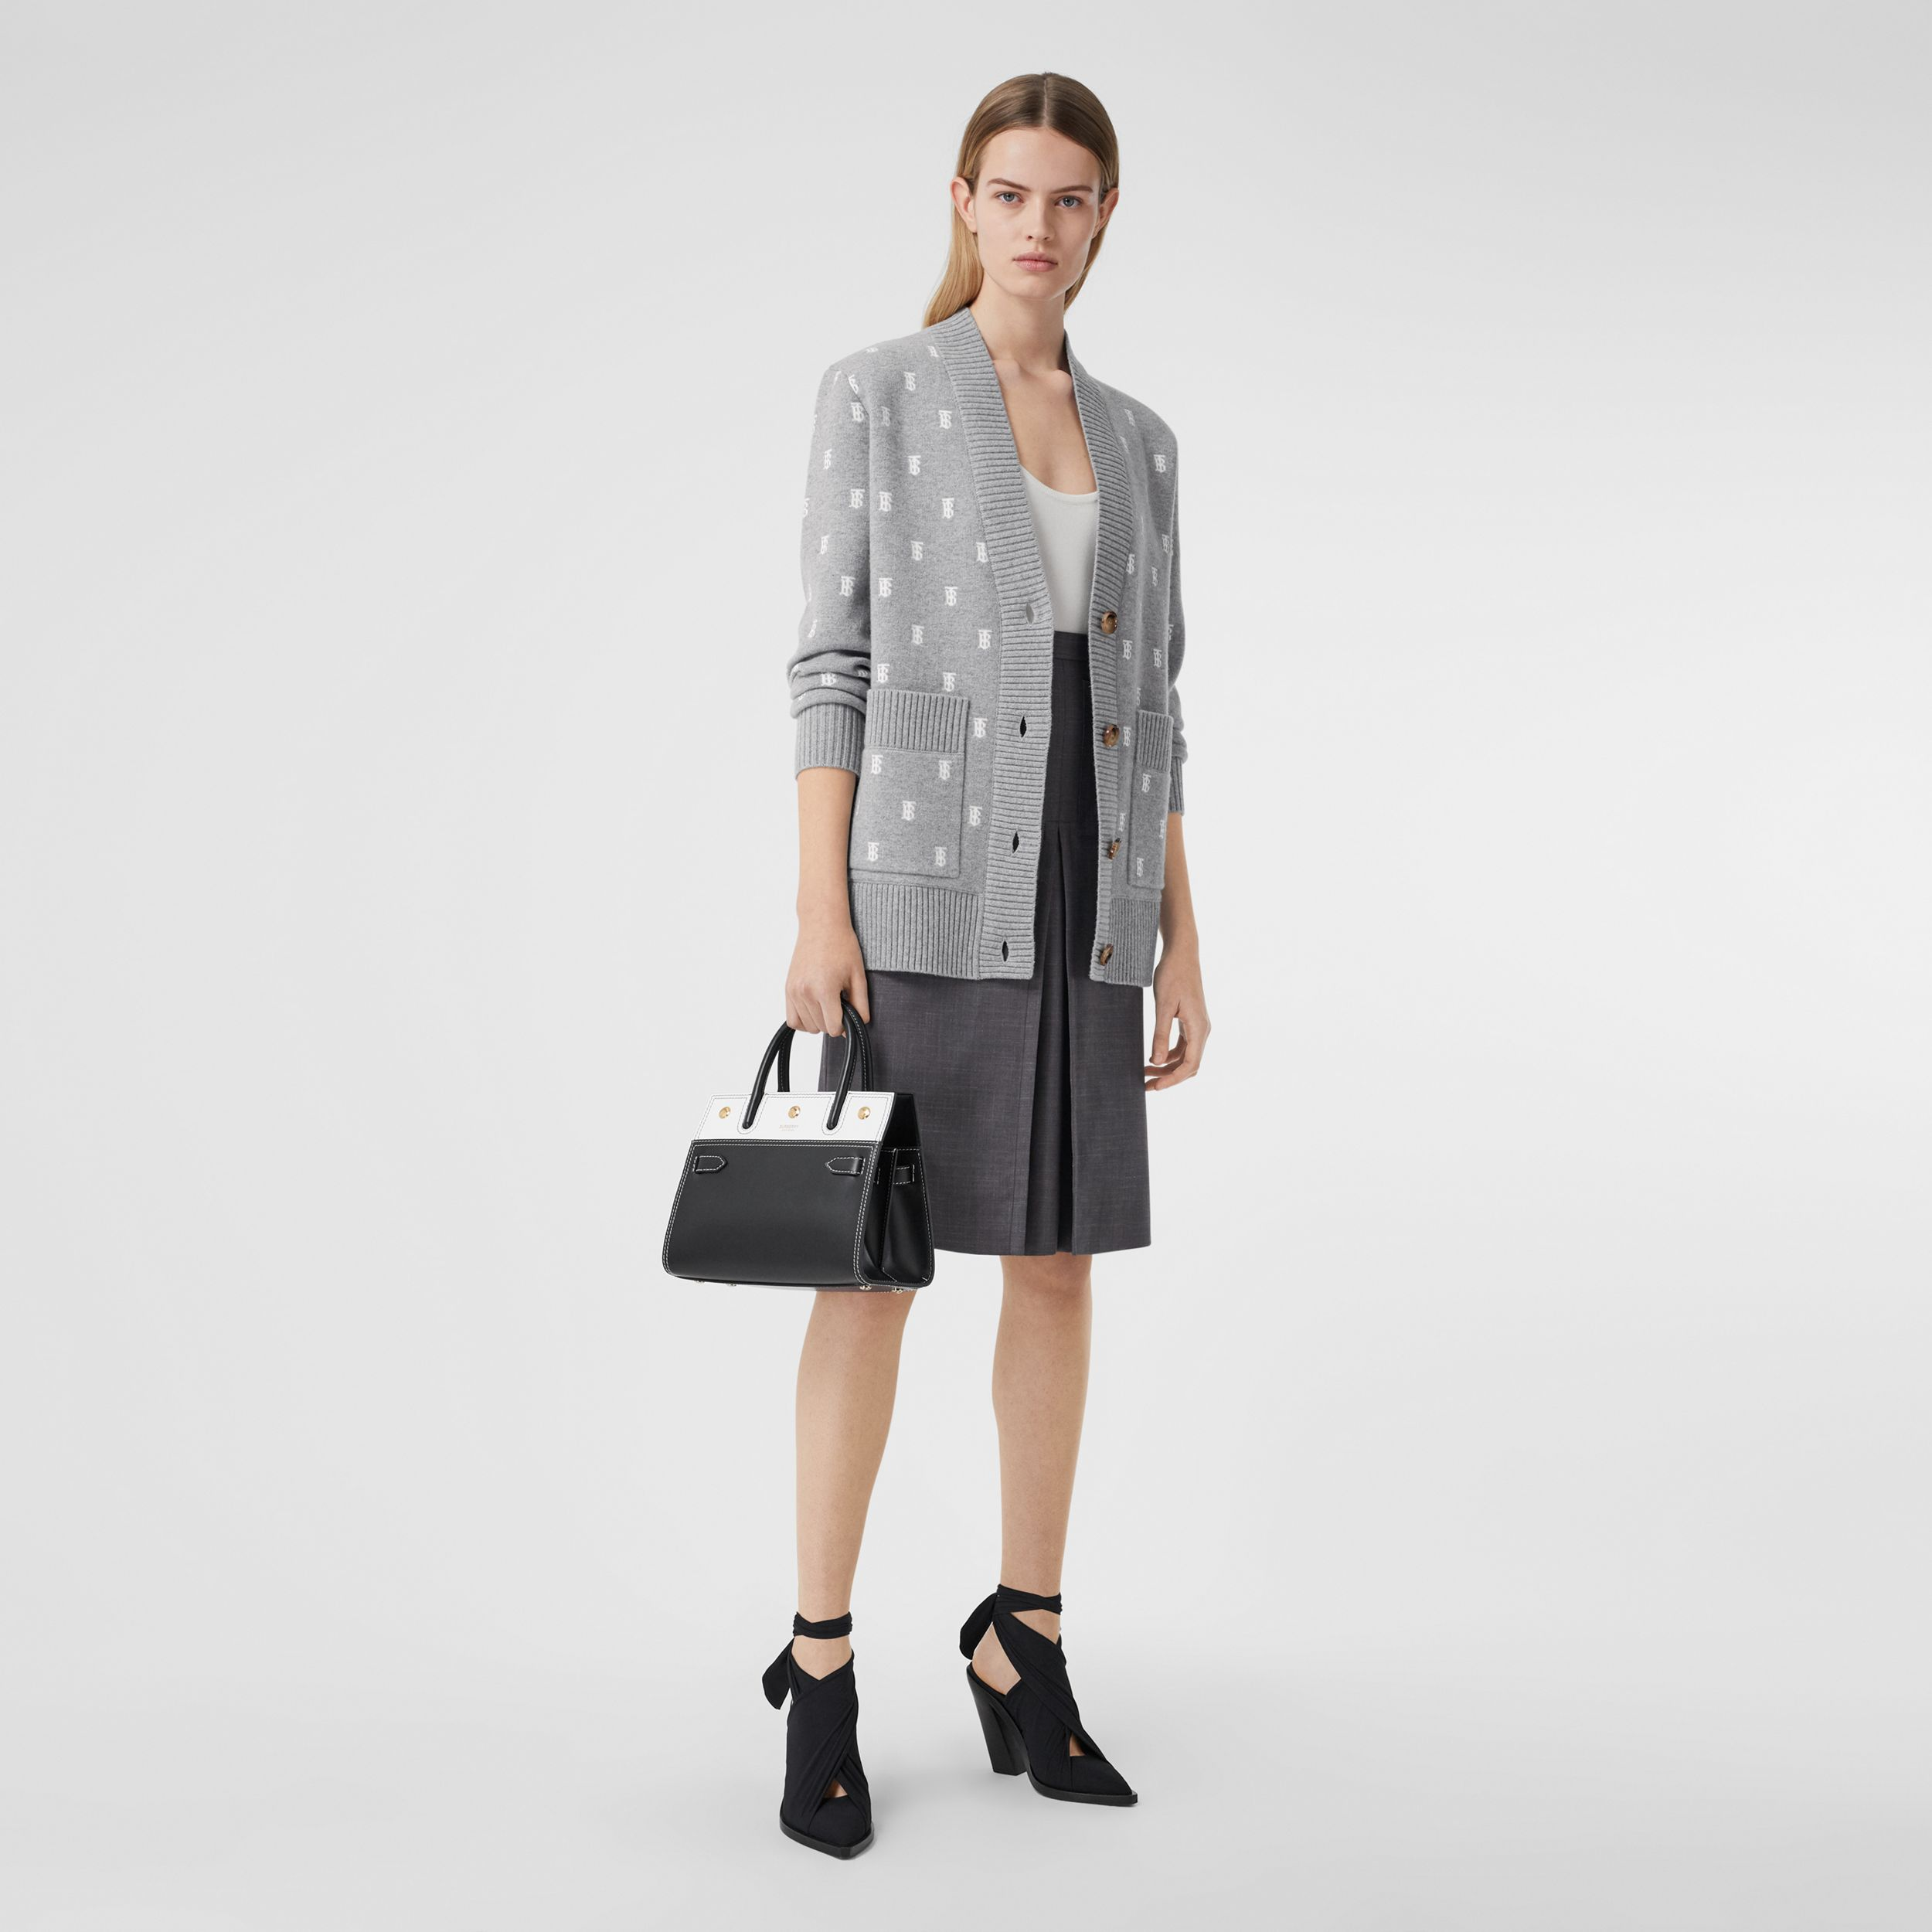 Monogram Wool Cashmere Blend Oversized Cardigan in Mid Grey Melange - Women | Burberry Singapore - 1